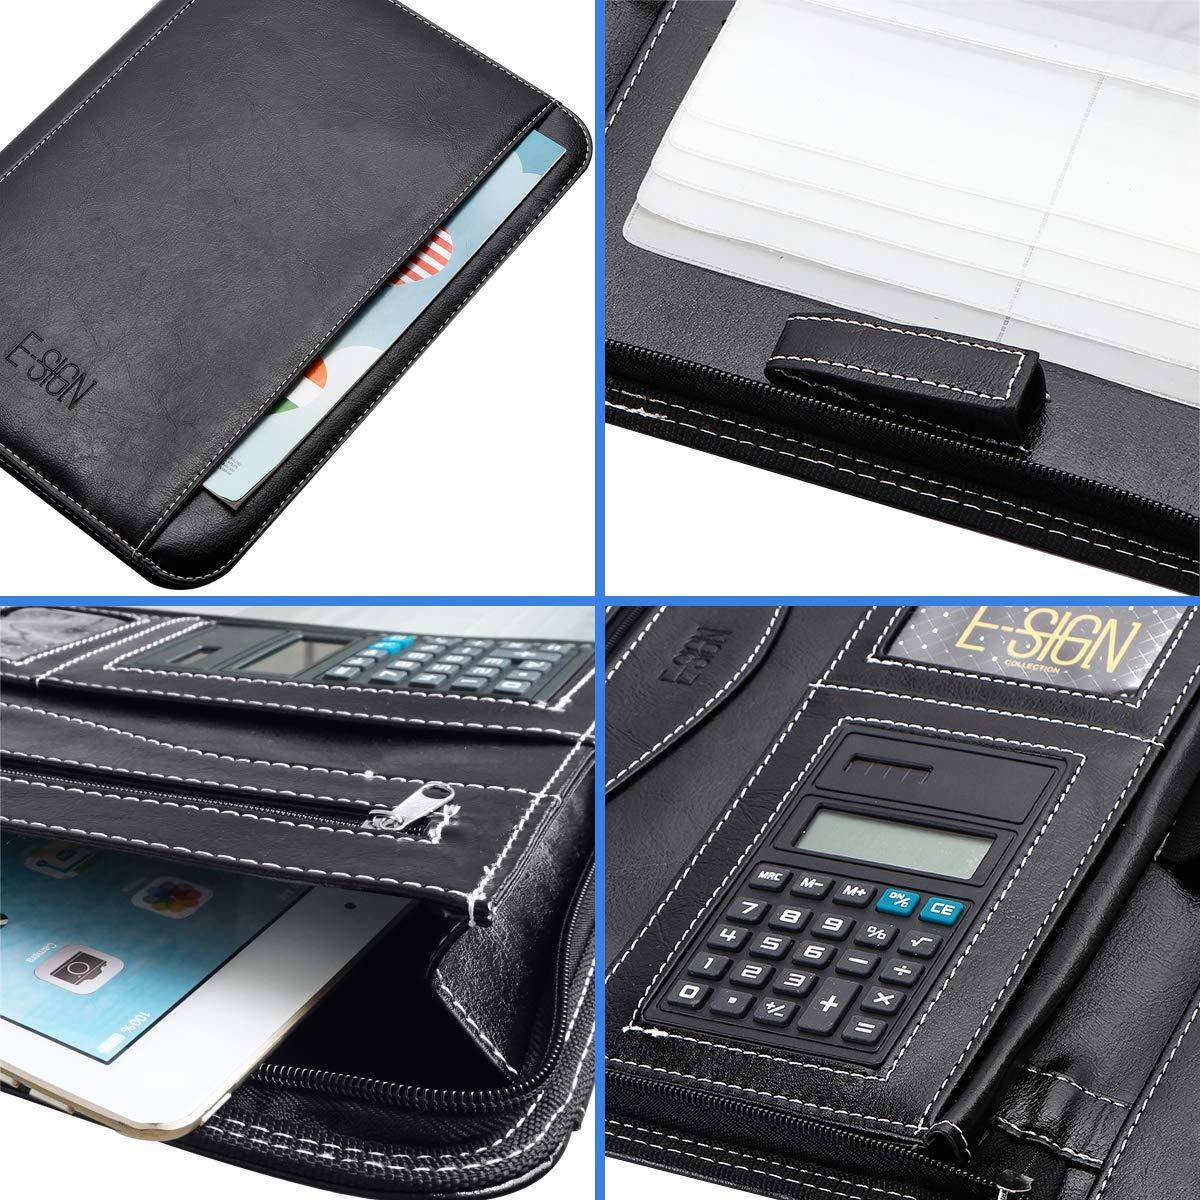 IVESIGN PU Leather Business Padfolio Portfolio with Calculator and Writing Pad, Professional Interview Padfolio with Zippered Closure, Interior 10.1 Inch Tablet Sleeve (Black)